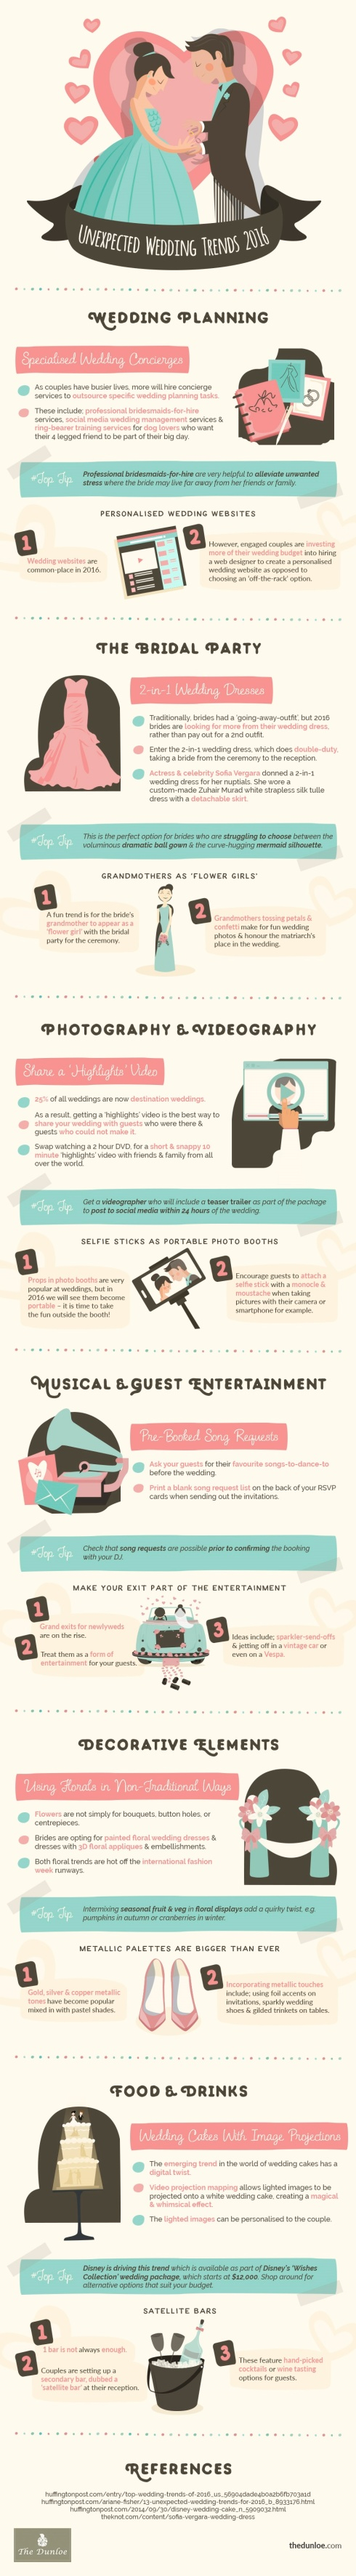 Unexpected Wedding Trends 2016-Infographic (2)